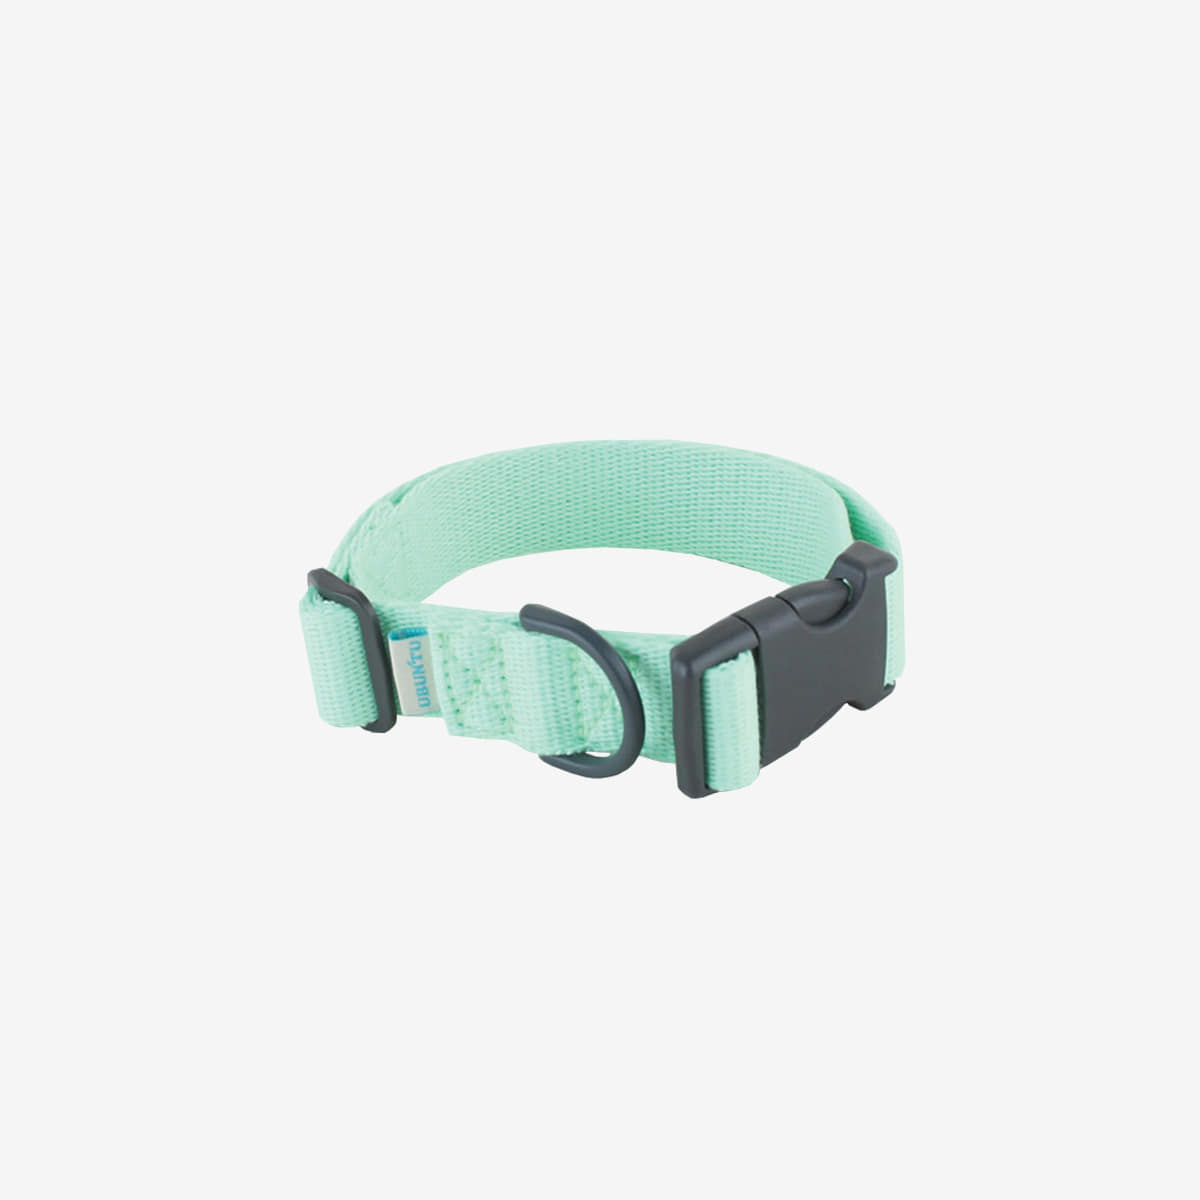 Daily collar _ neomint